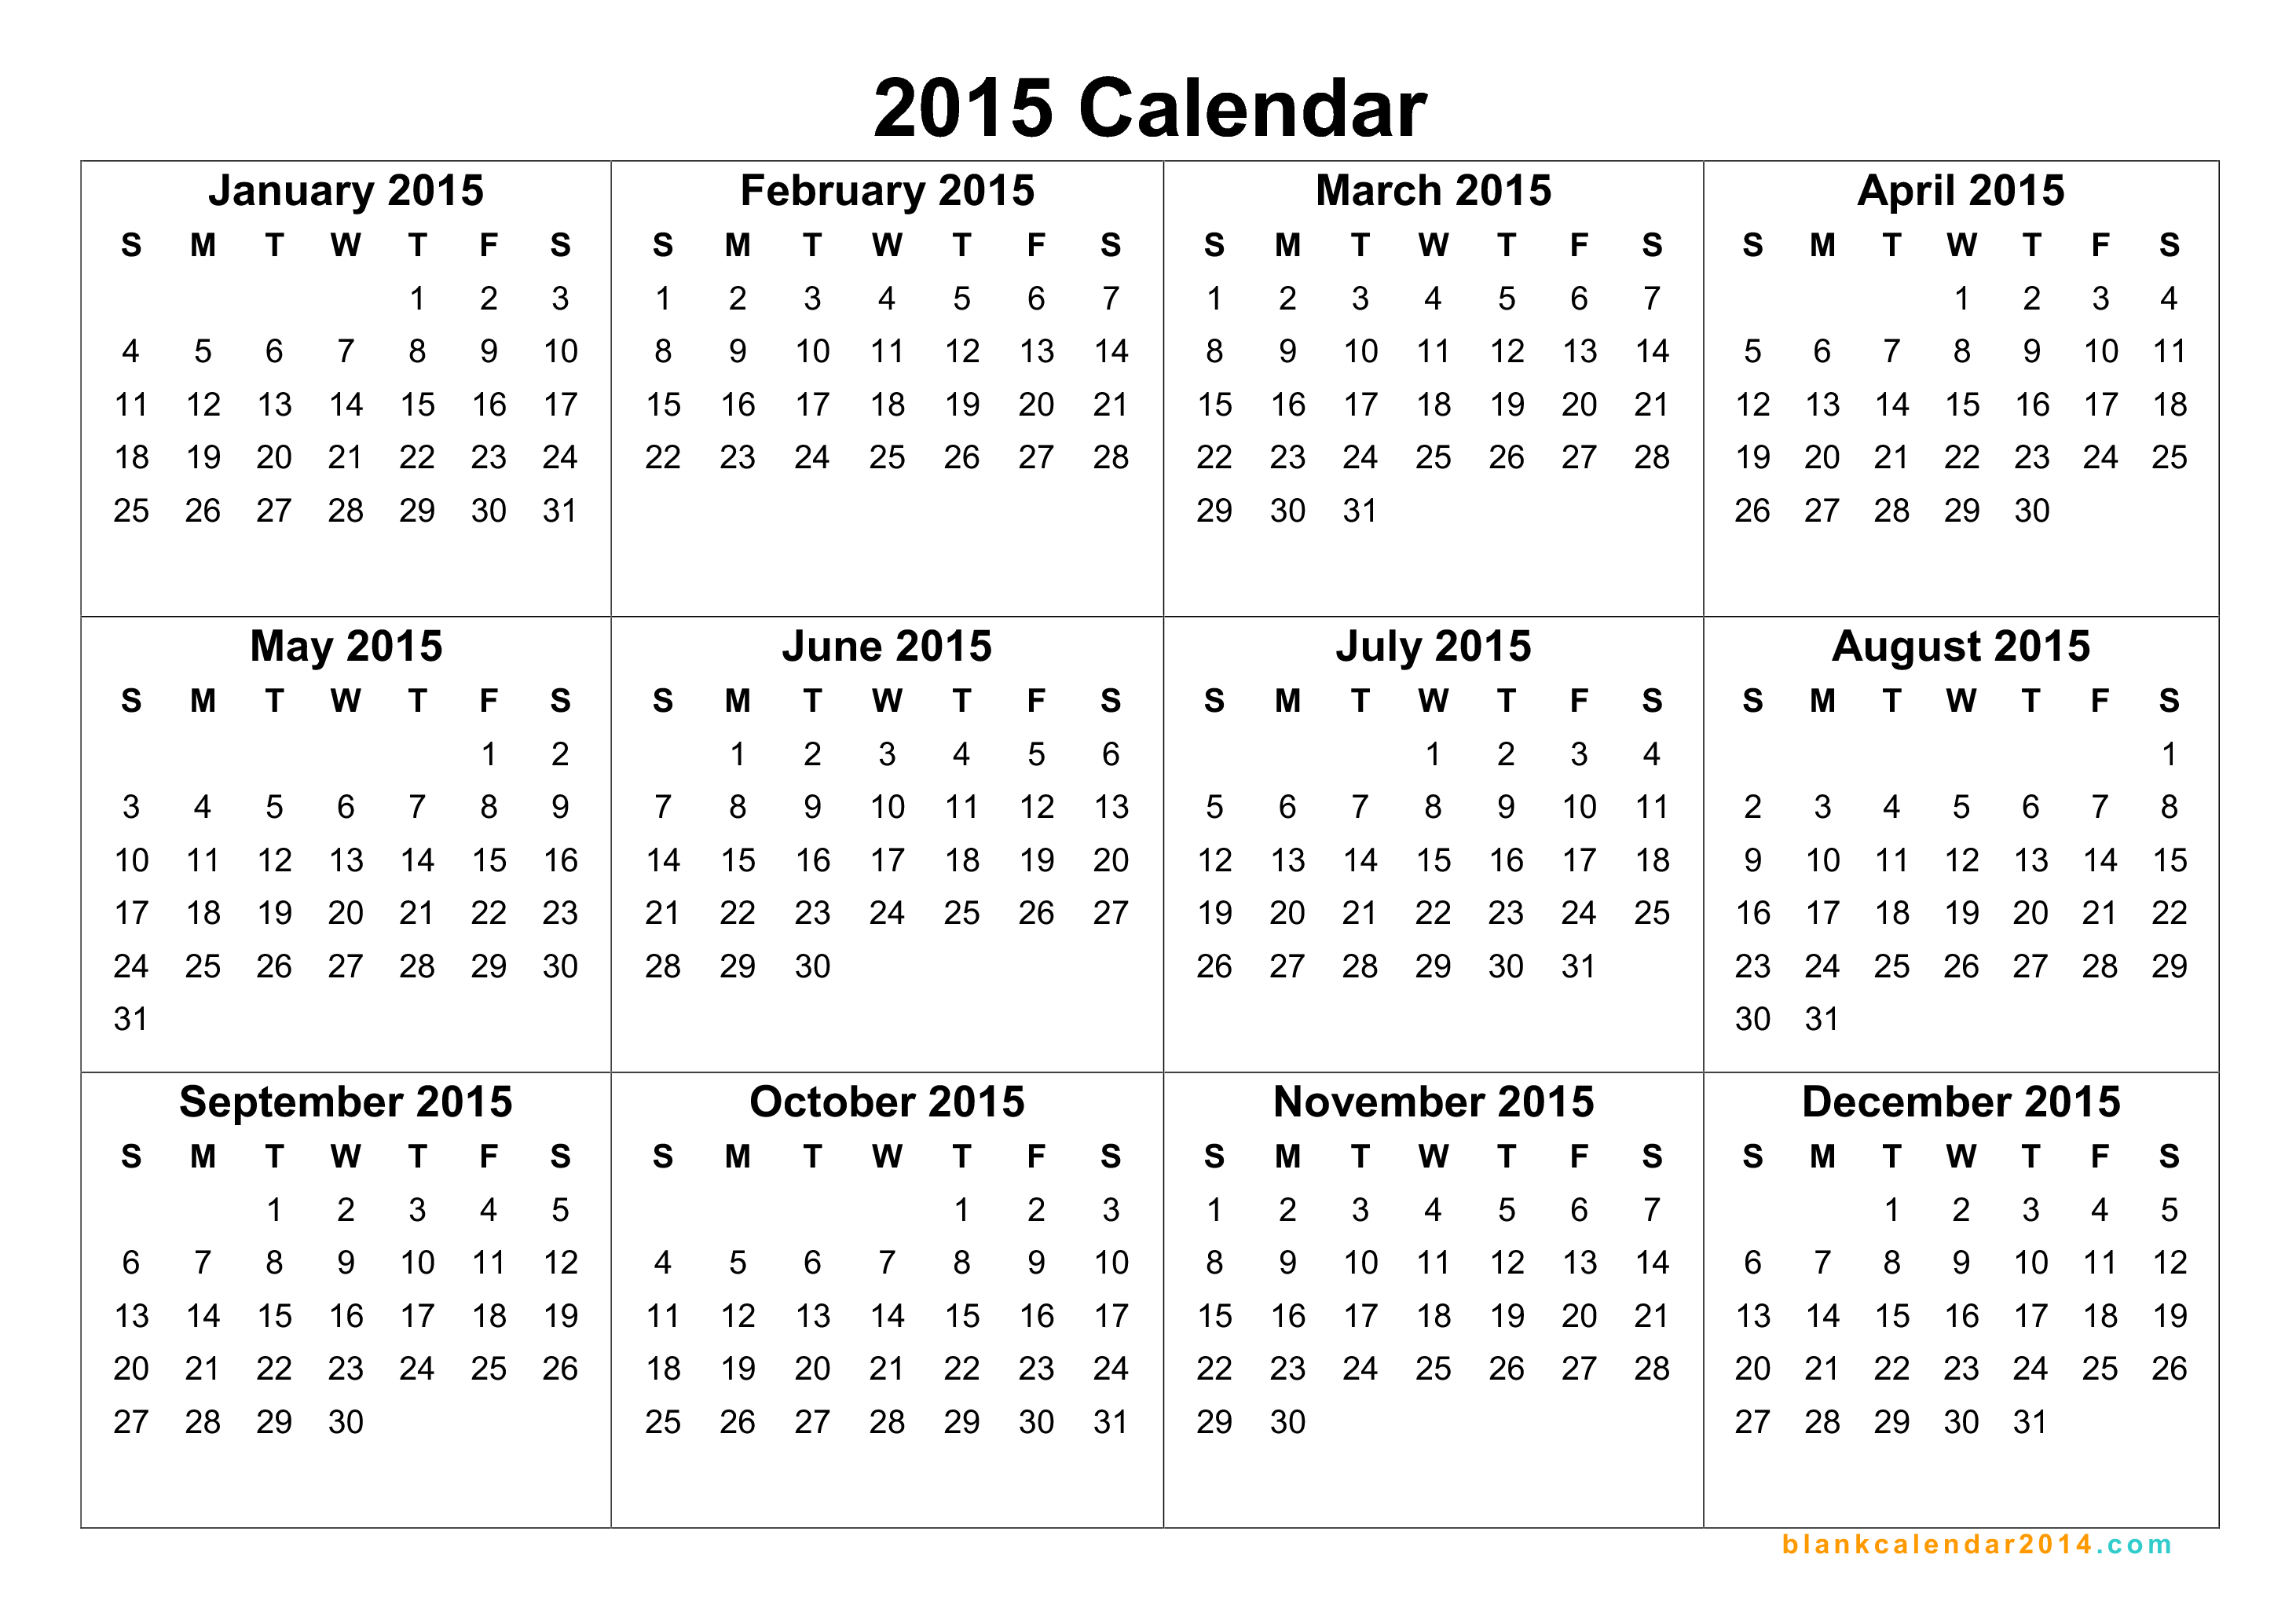 Blank yearly calendar 2015 templates free printable for 2015 yearly calendar template in landscape format